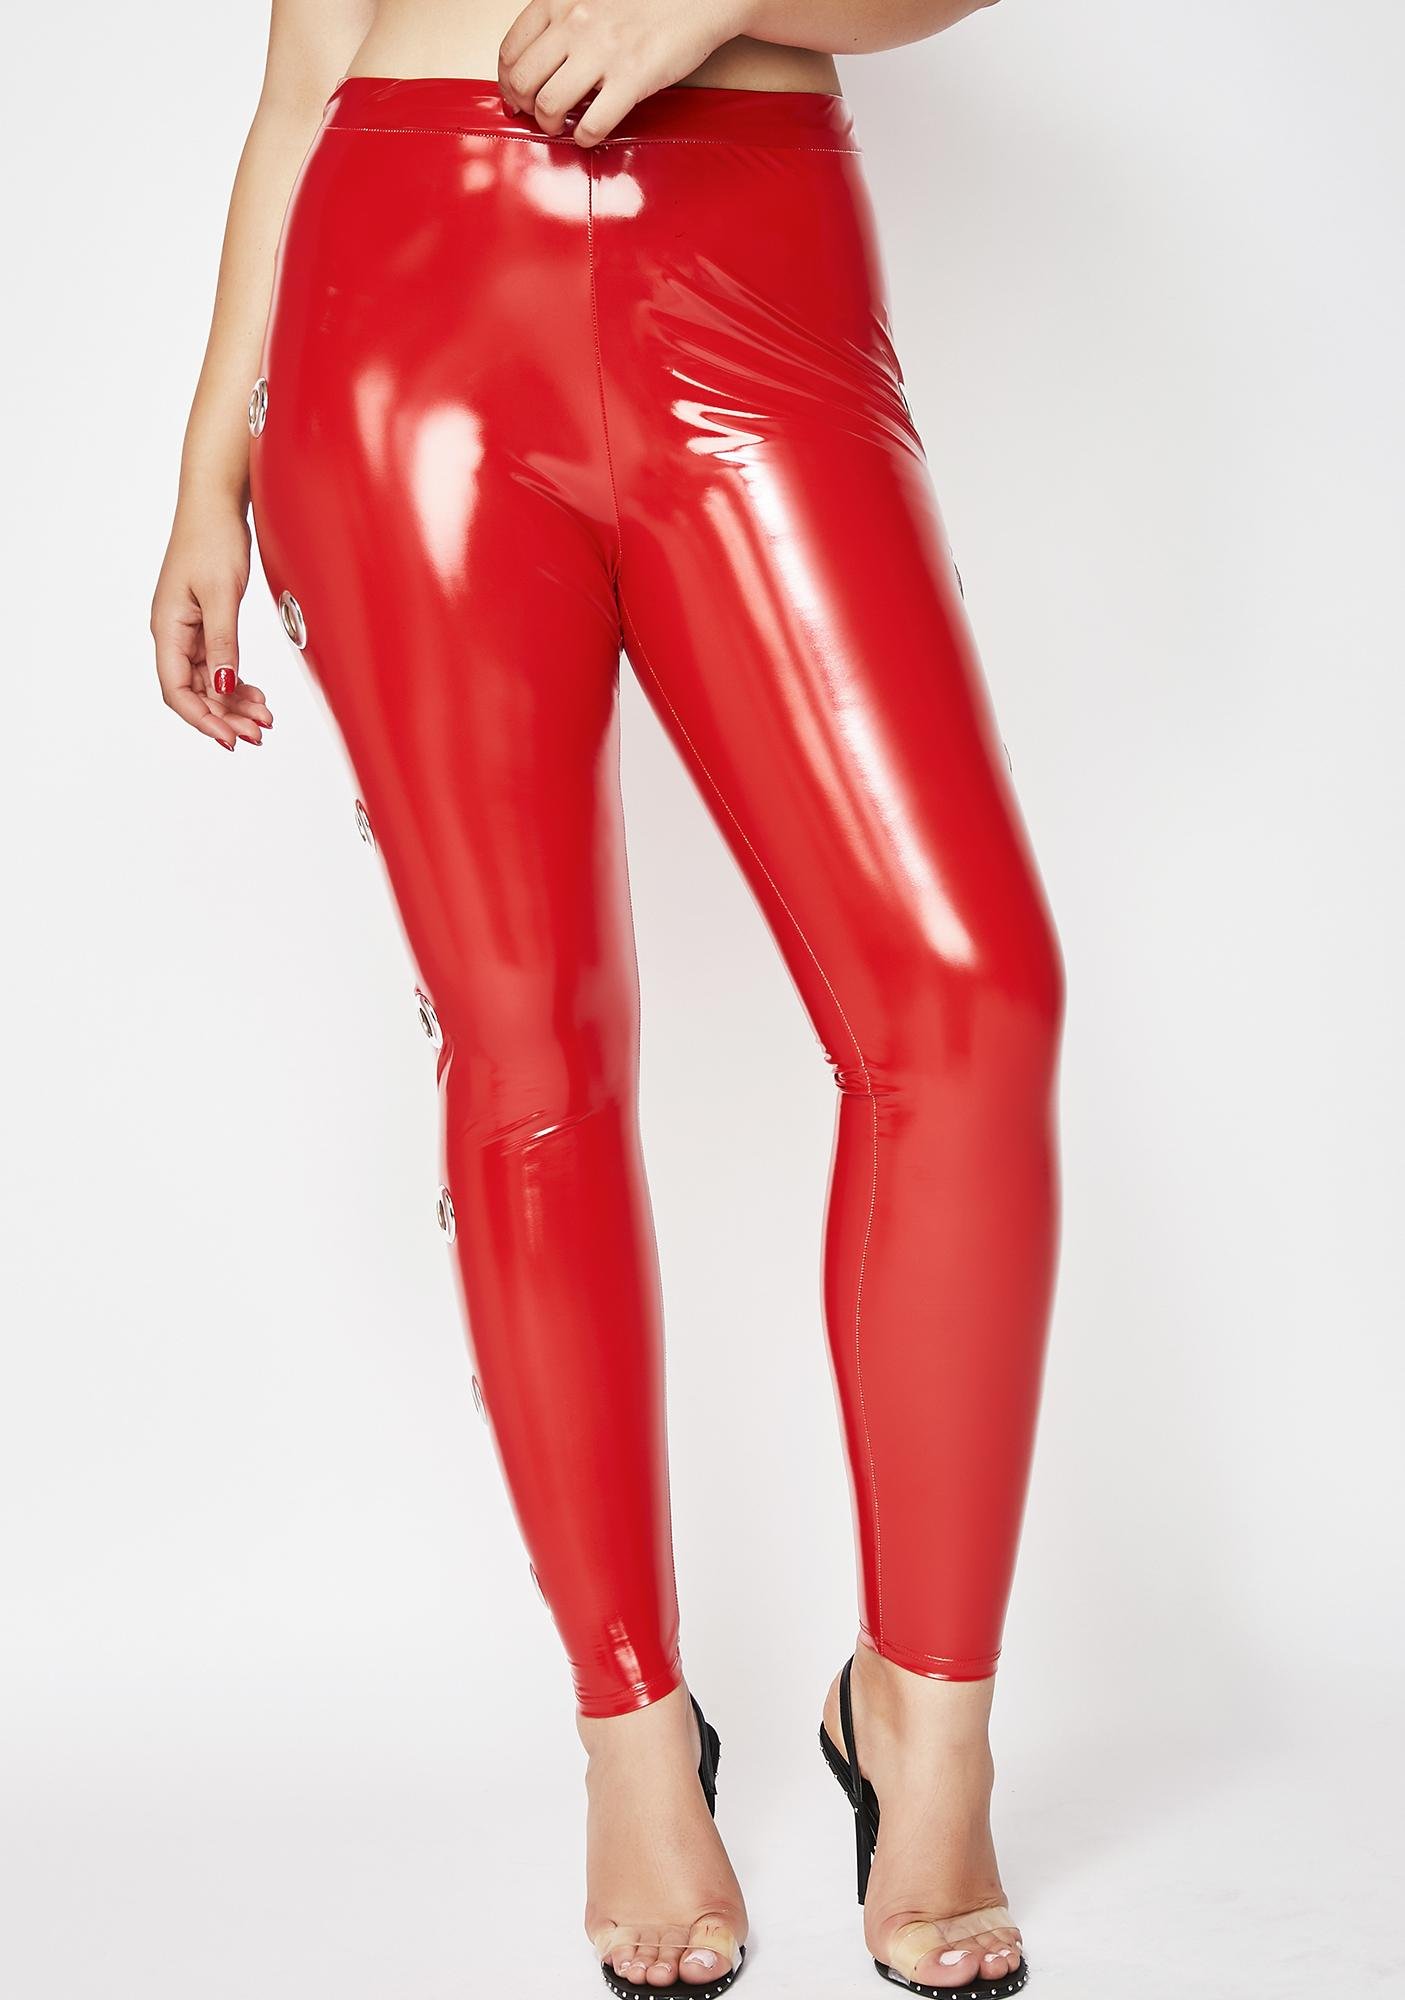 Fire Better Than Ever Vinyl Leggings